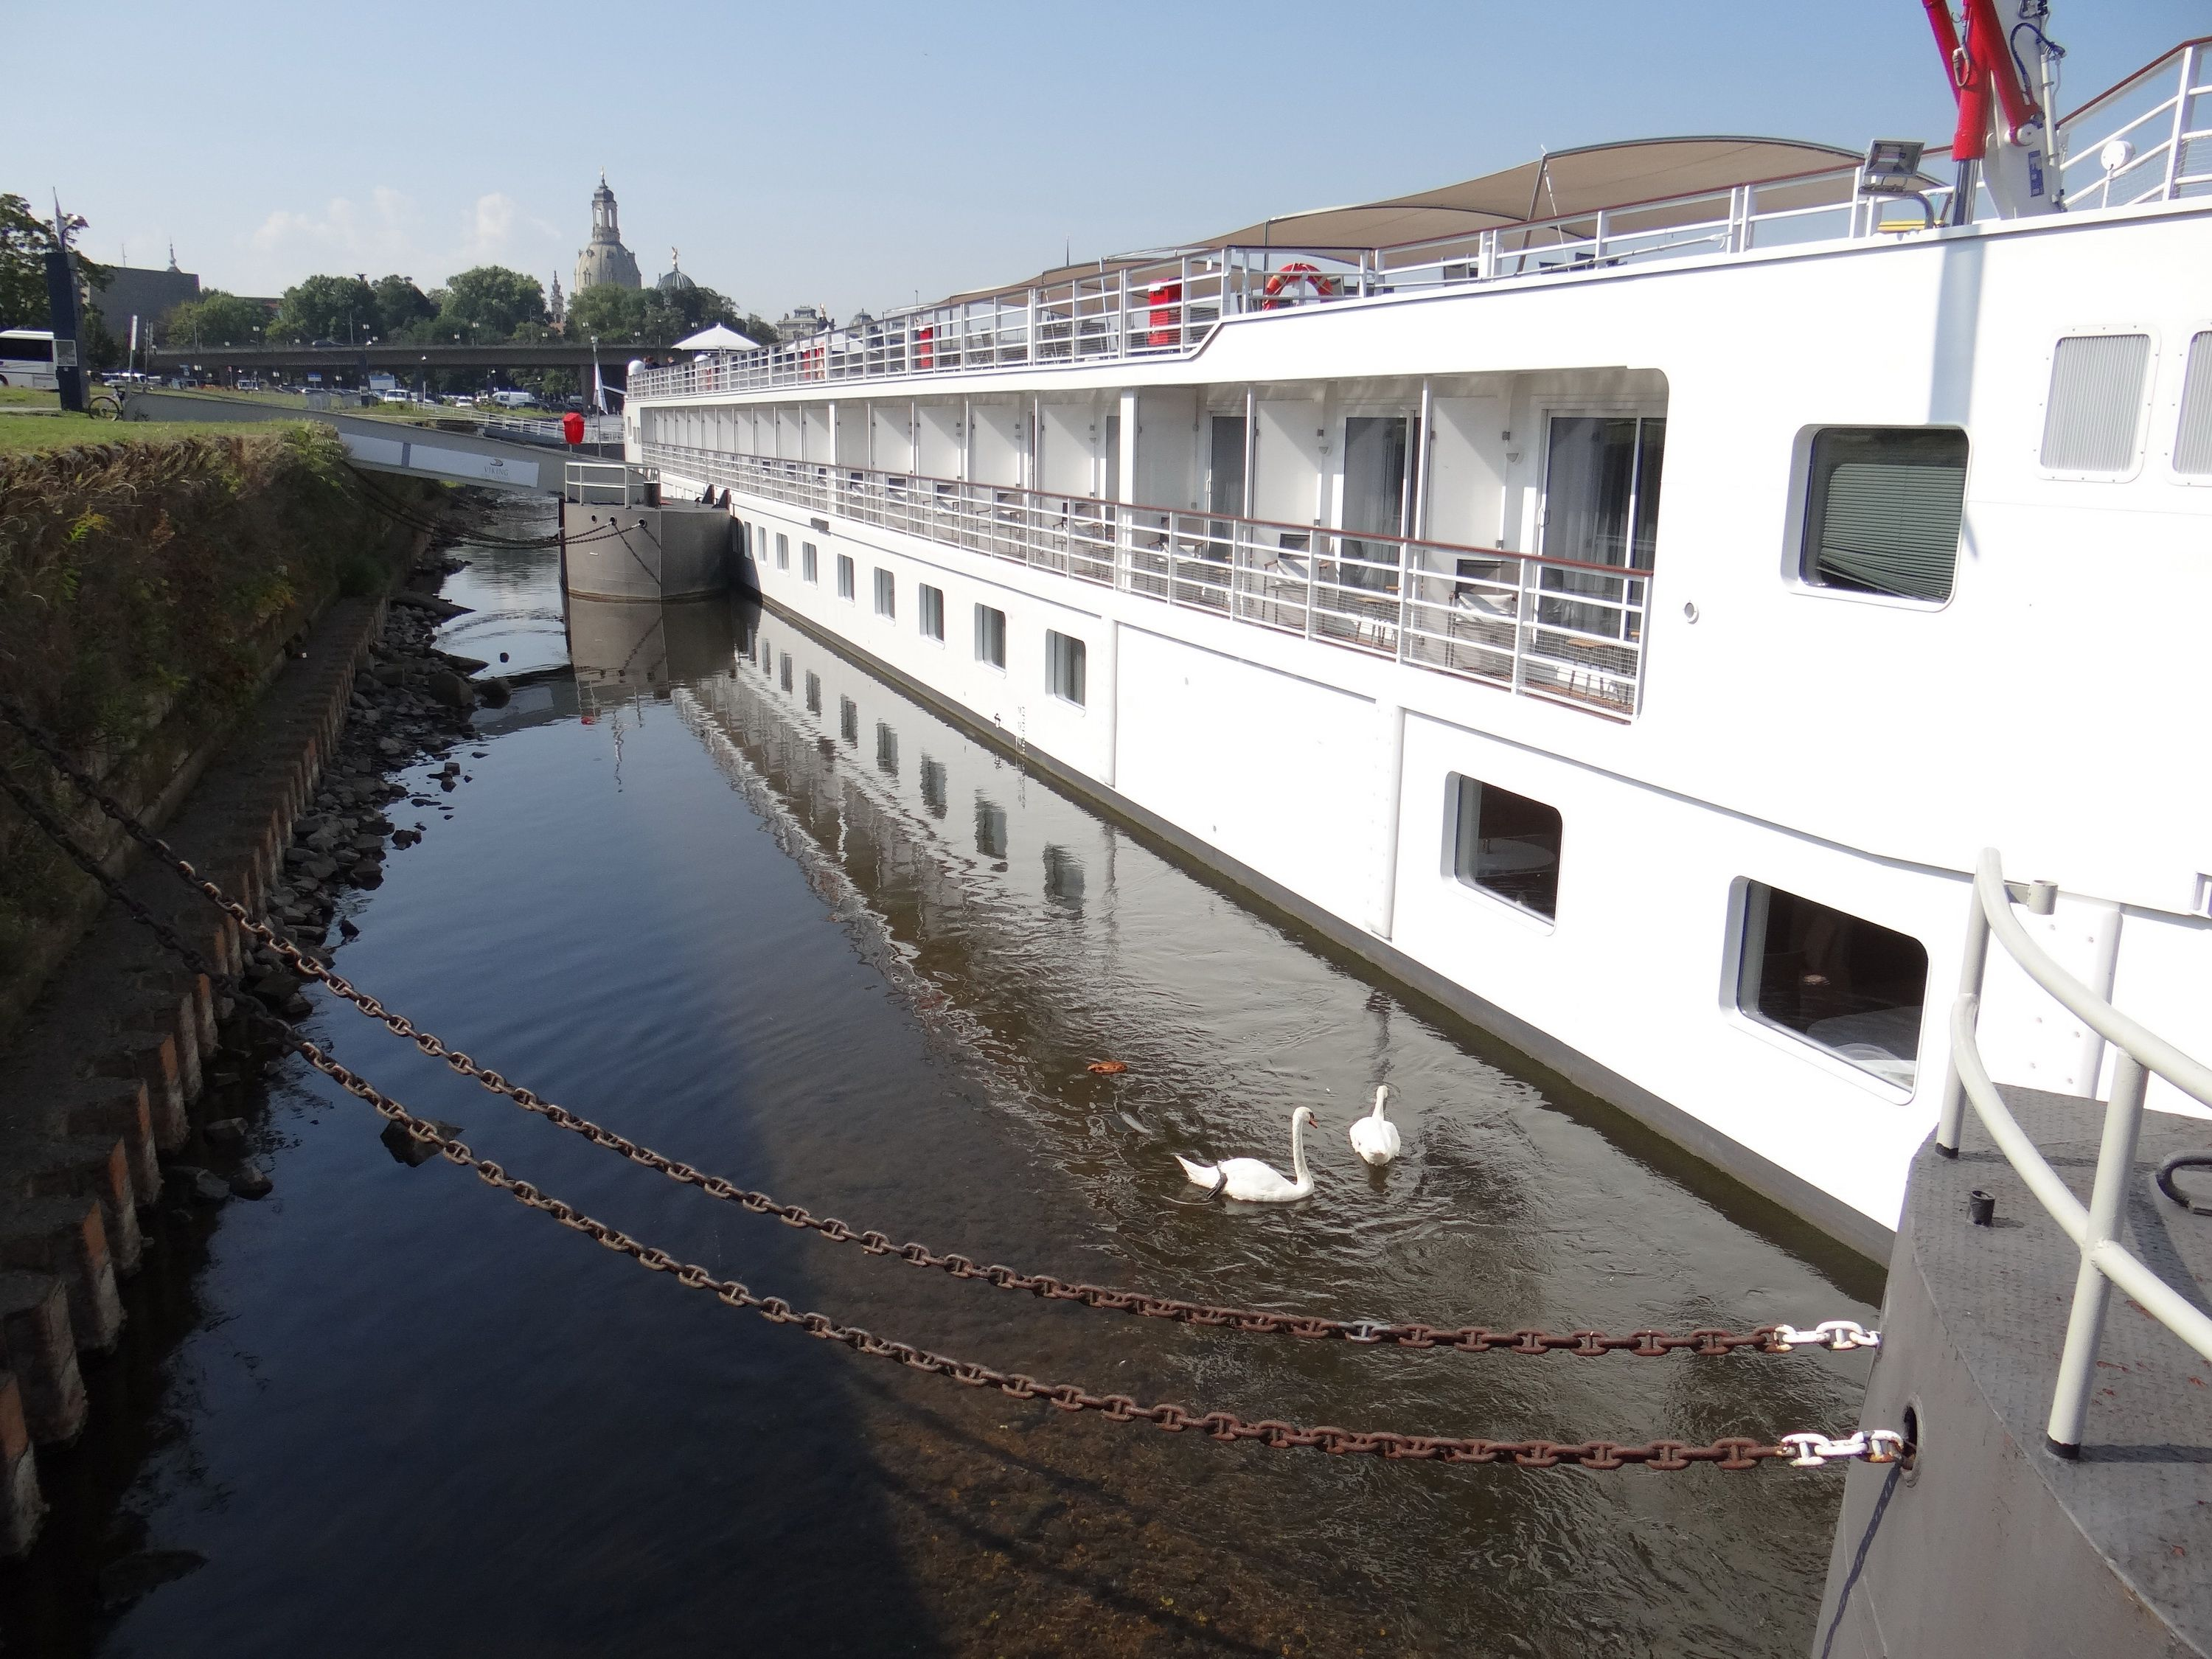 Swans and the Viking Beyla on the Elbe River in Germany